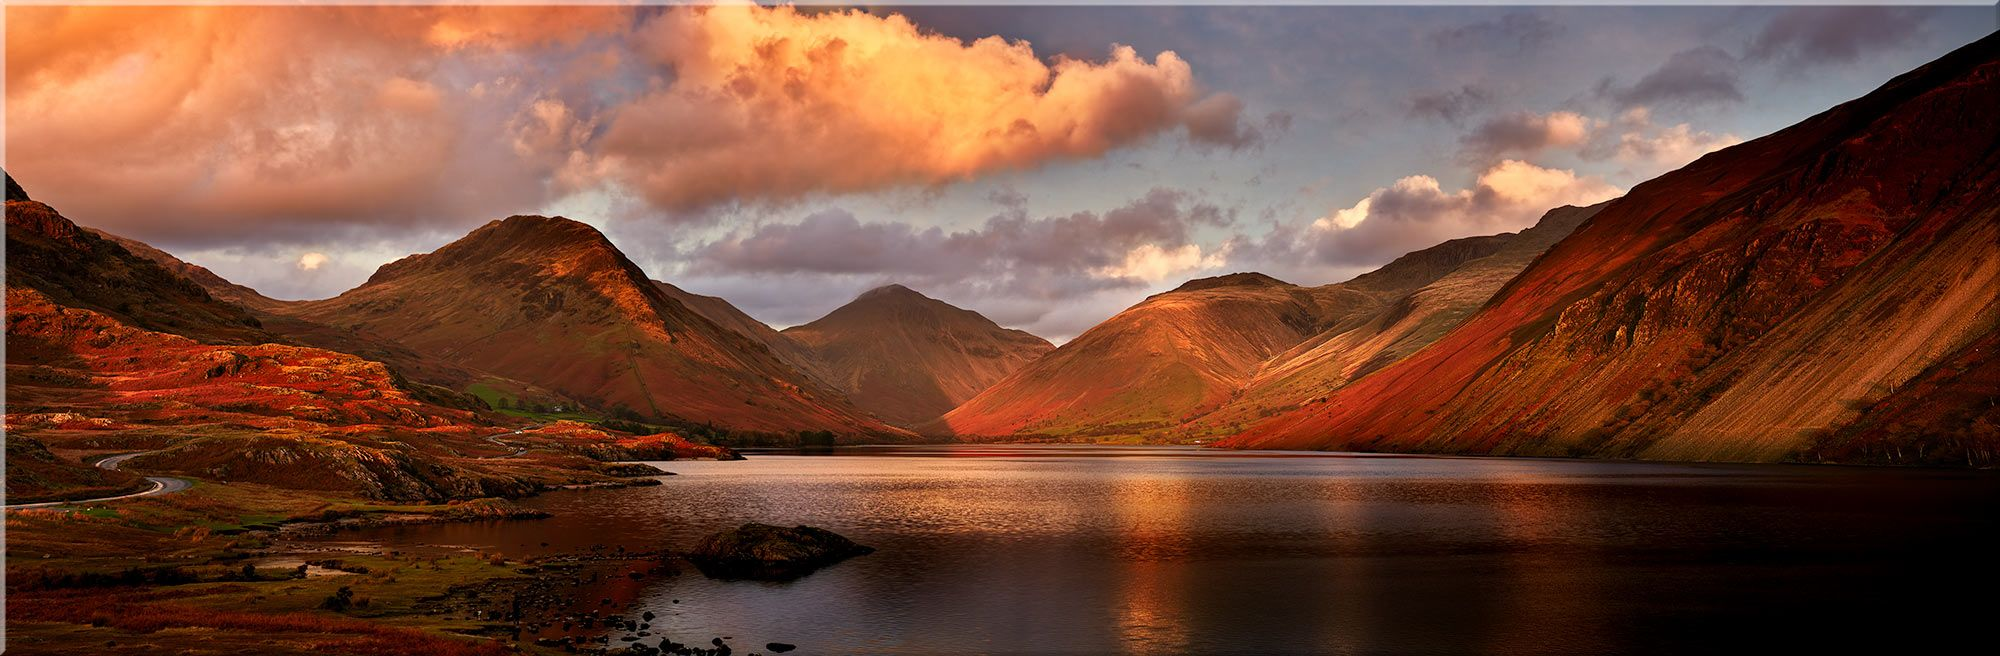 Dusk At Wast Water Canvas Print Lake District England Lake District Scenery